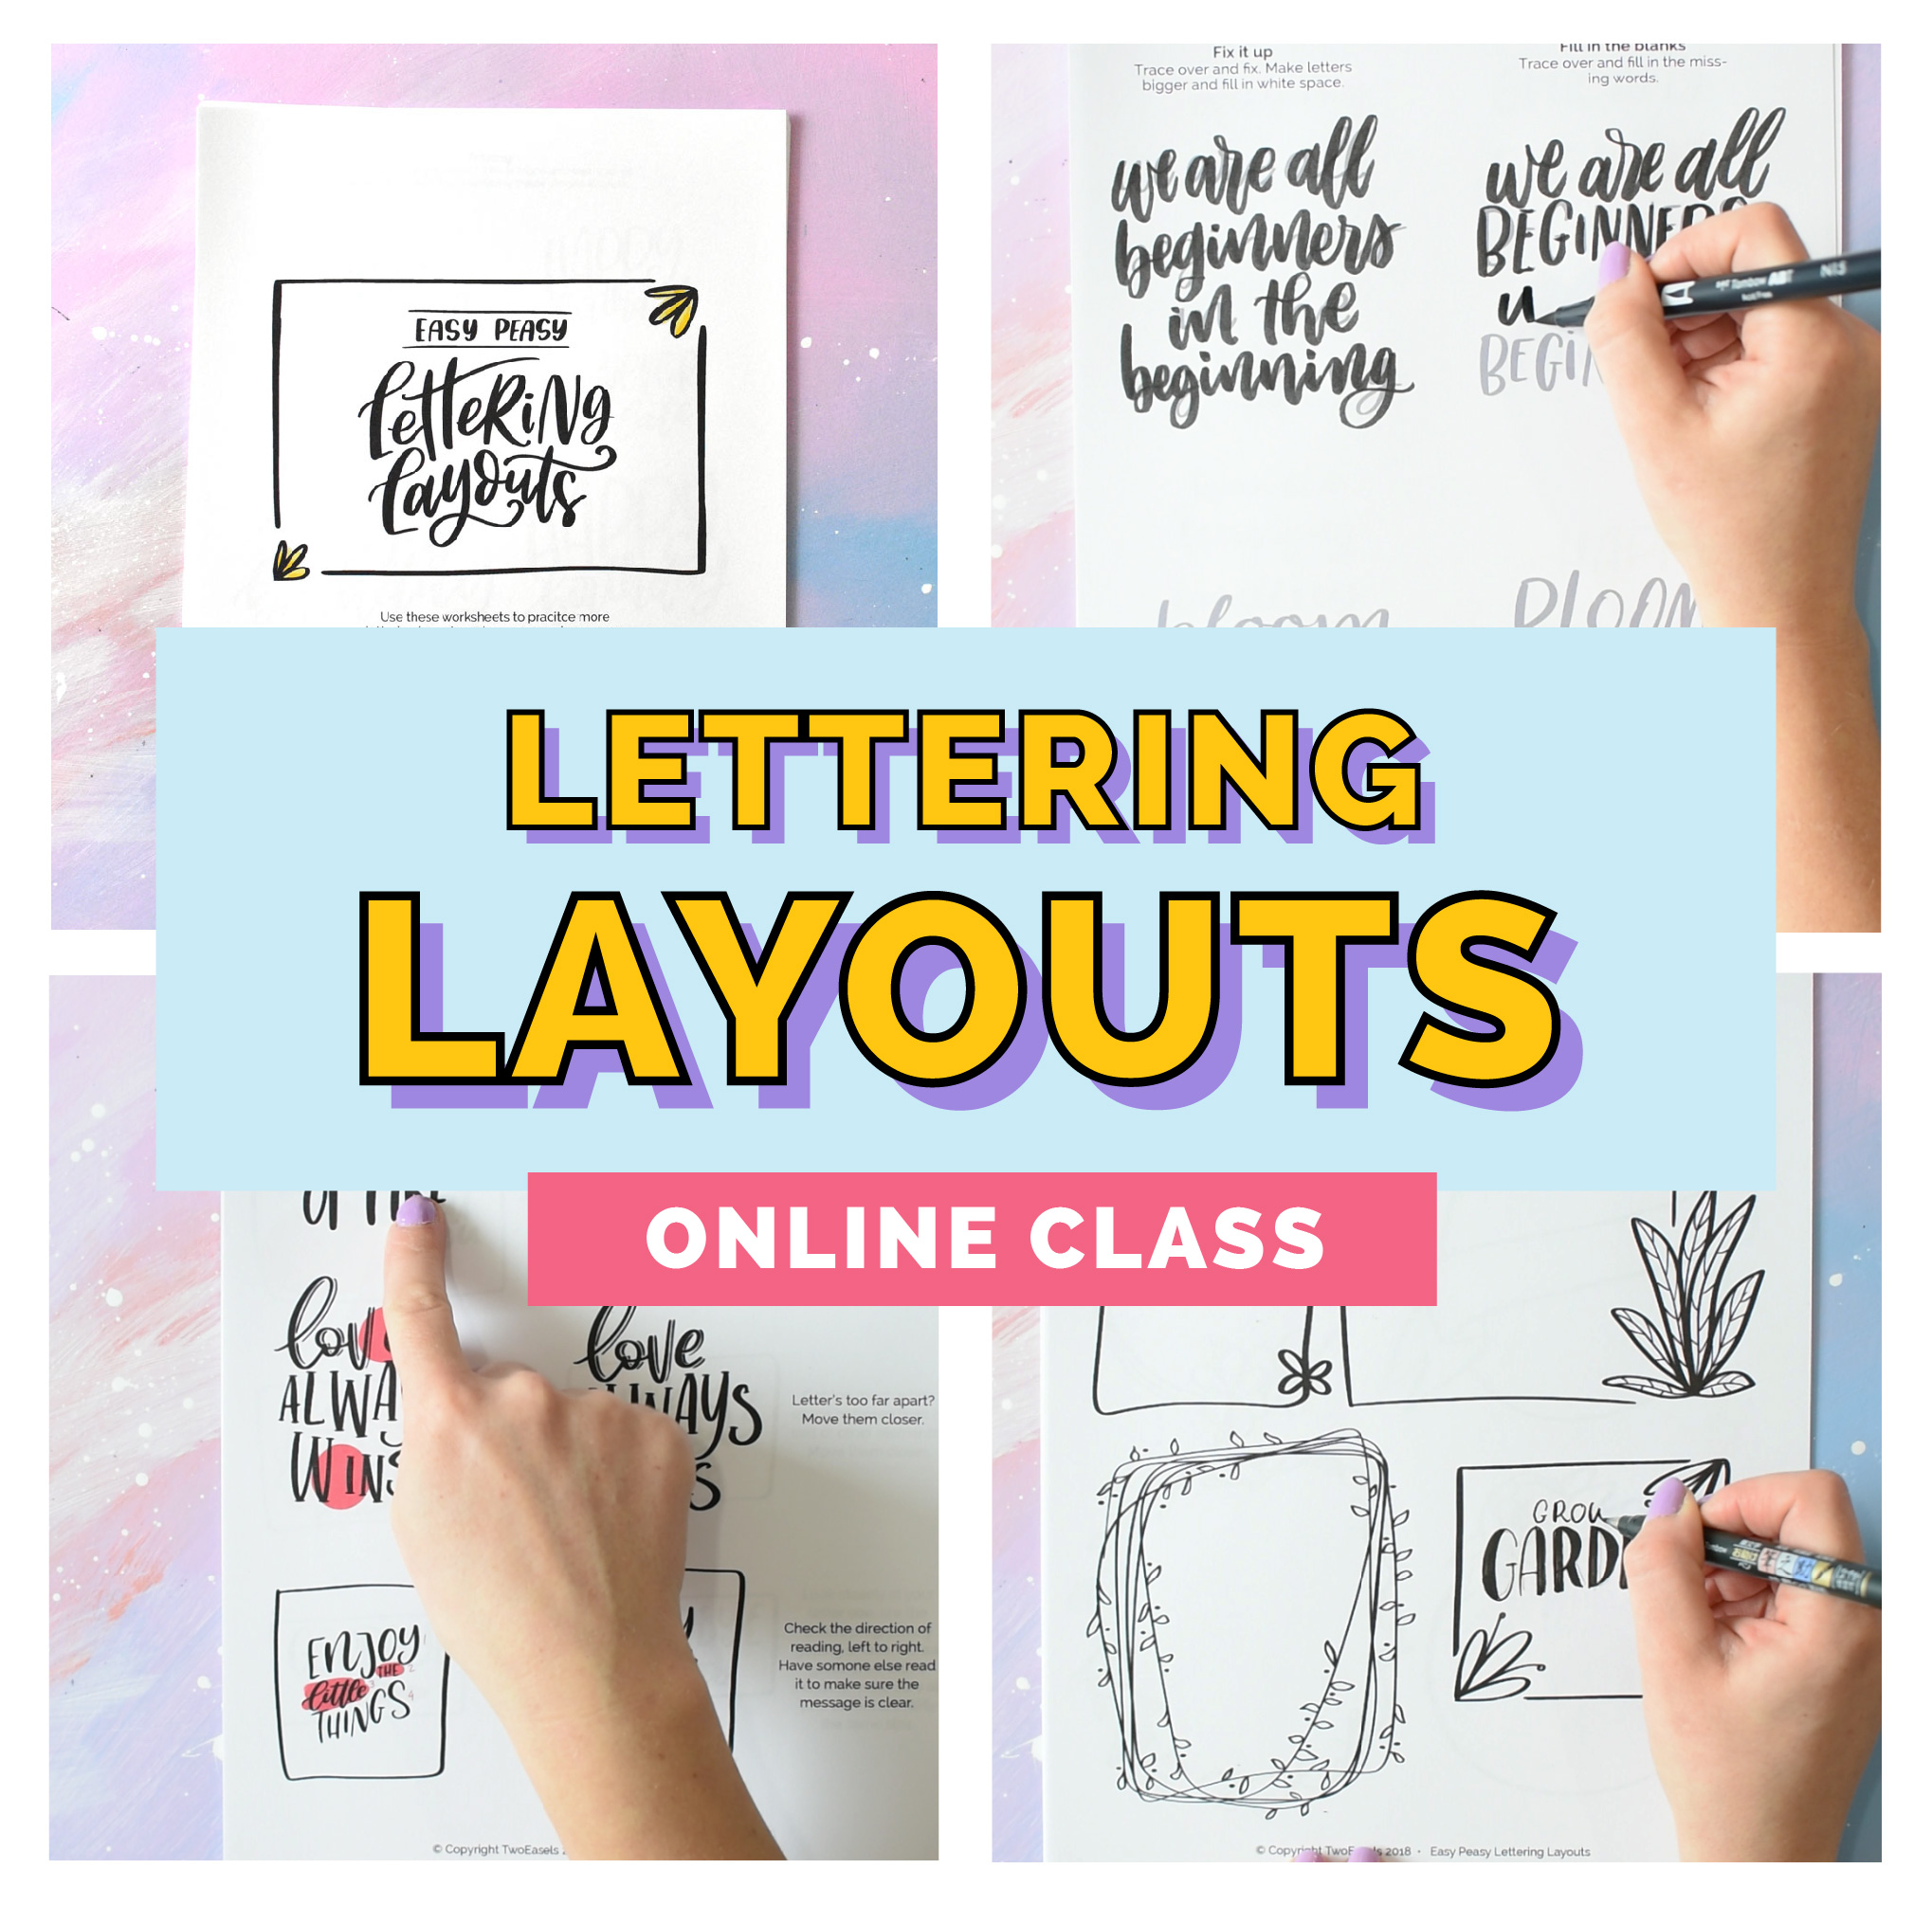 Learn how to create beautiful hand lettered layouts with this course. Easy Peasy lettering layouts. For the semi beginner.